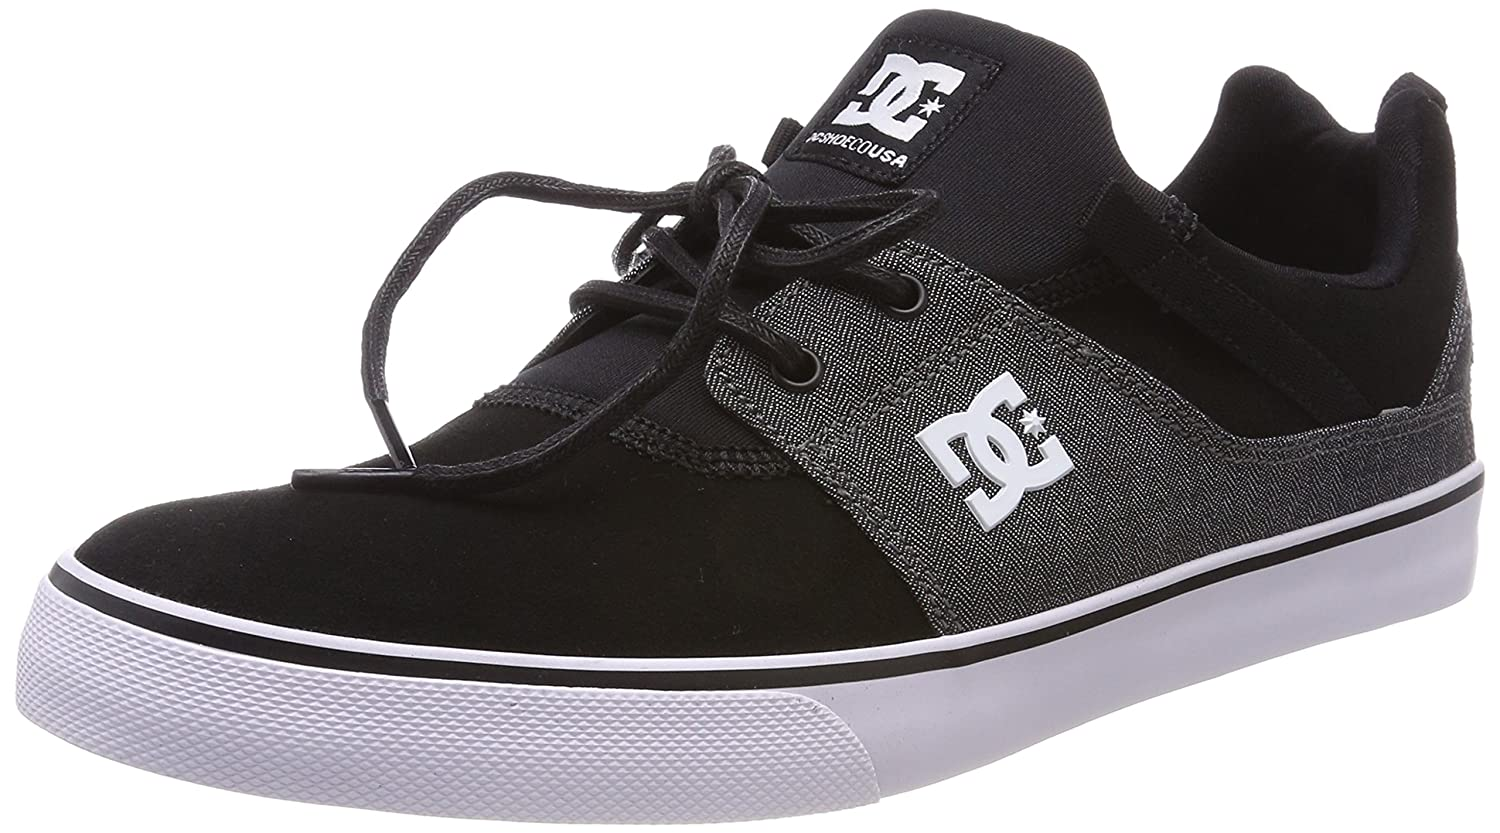 TALLA 43 EU. DC Shoes Heathrow Vulc Se, Zapatillas para Hombre